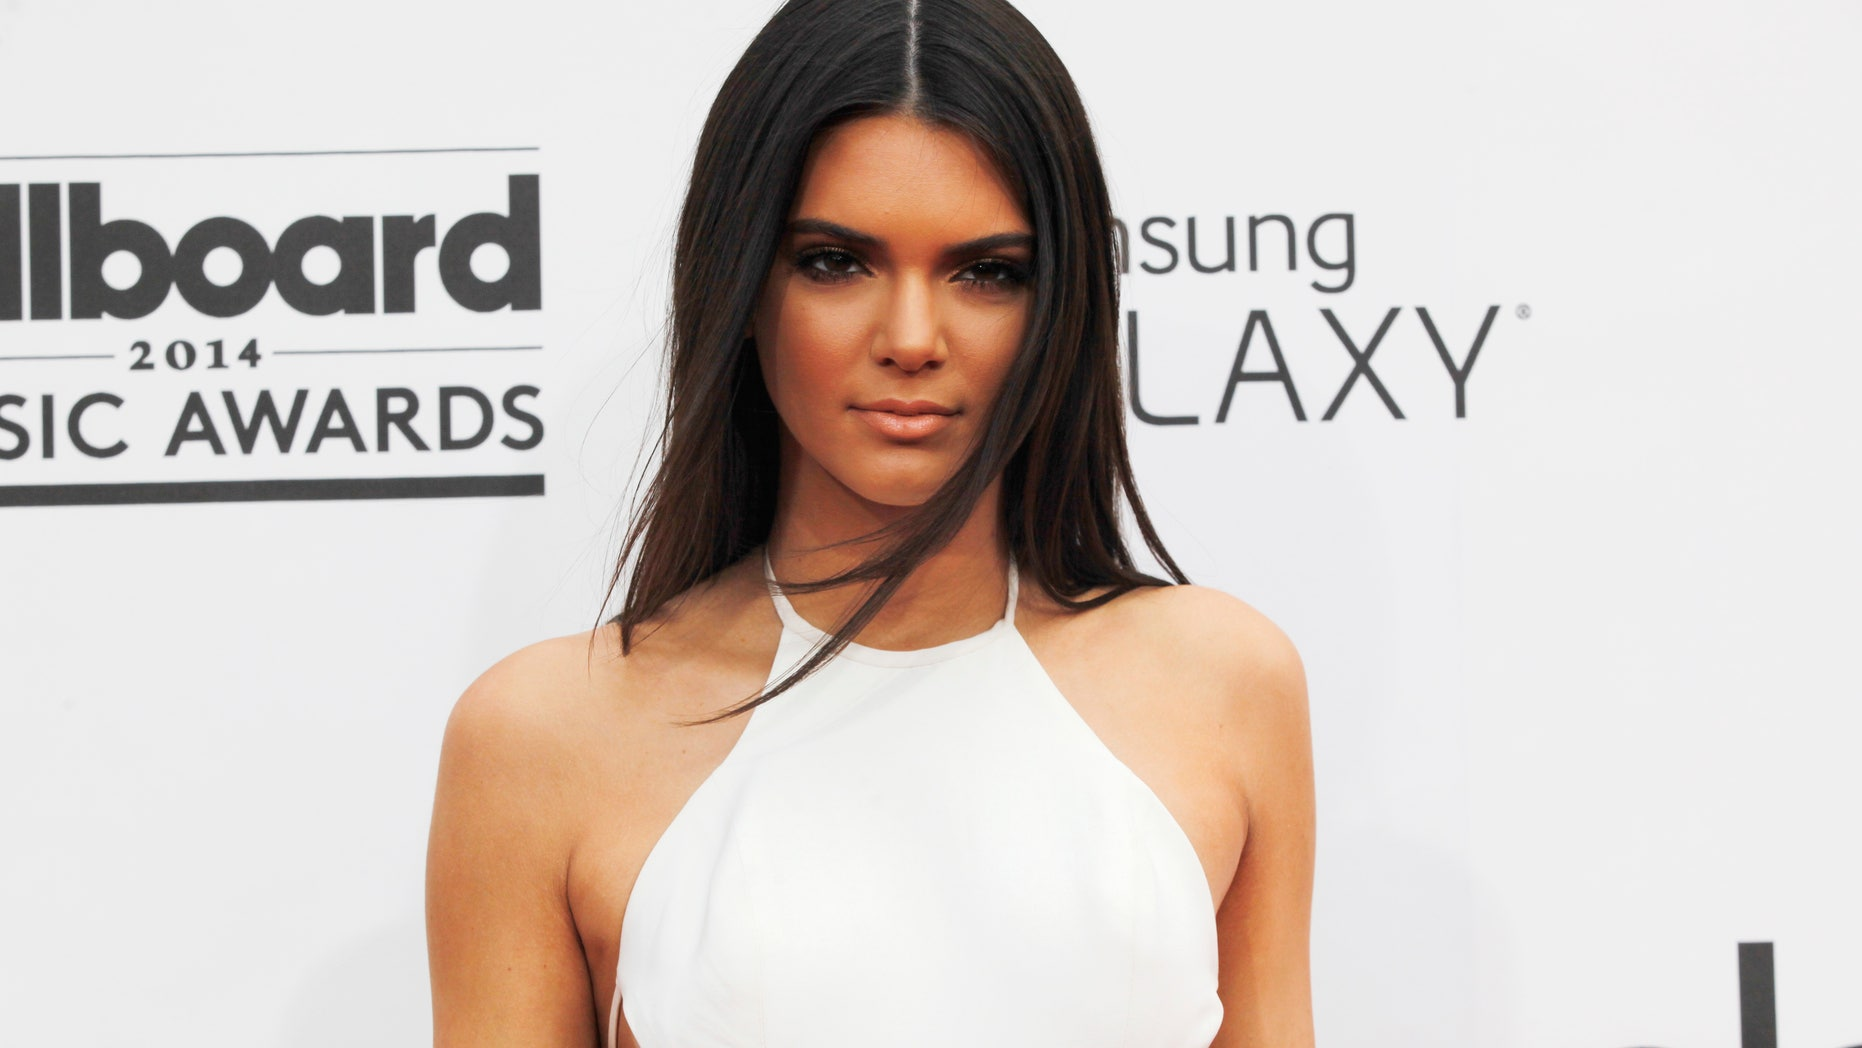 Model Kendall Jenner arrives at the 2014 Billboard Music Awards in Las Vegas, Nevada May 18, 2014.  REUTERS/L.E. Baskow  (UNITED STATES-Tags: ENTERTAINMENT)(BILLBOARDAWARDS-ARRIVALS) - RTR3PQOC